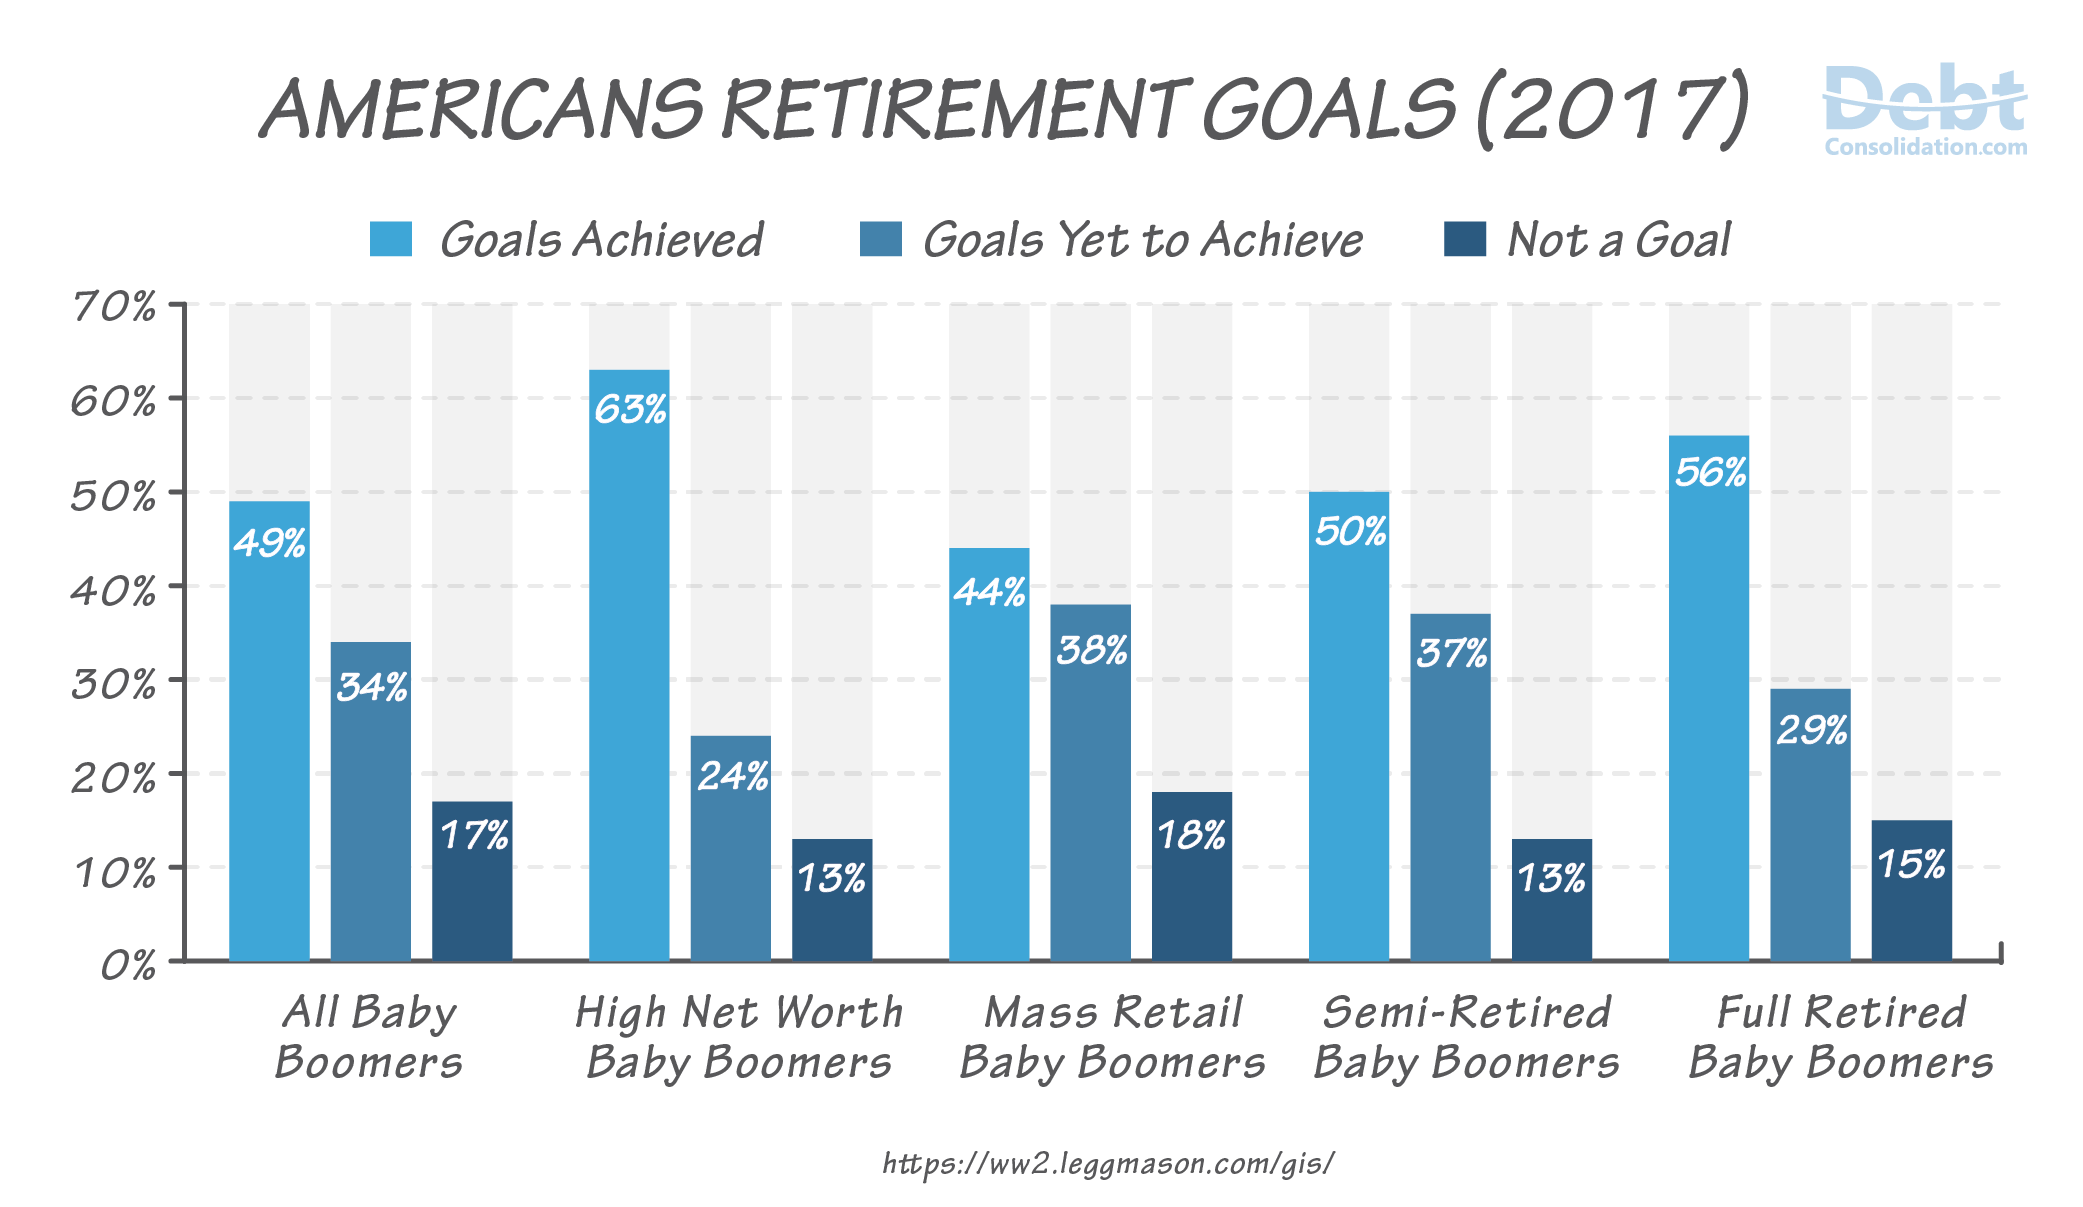 2017 Americans Retirement Goals